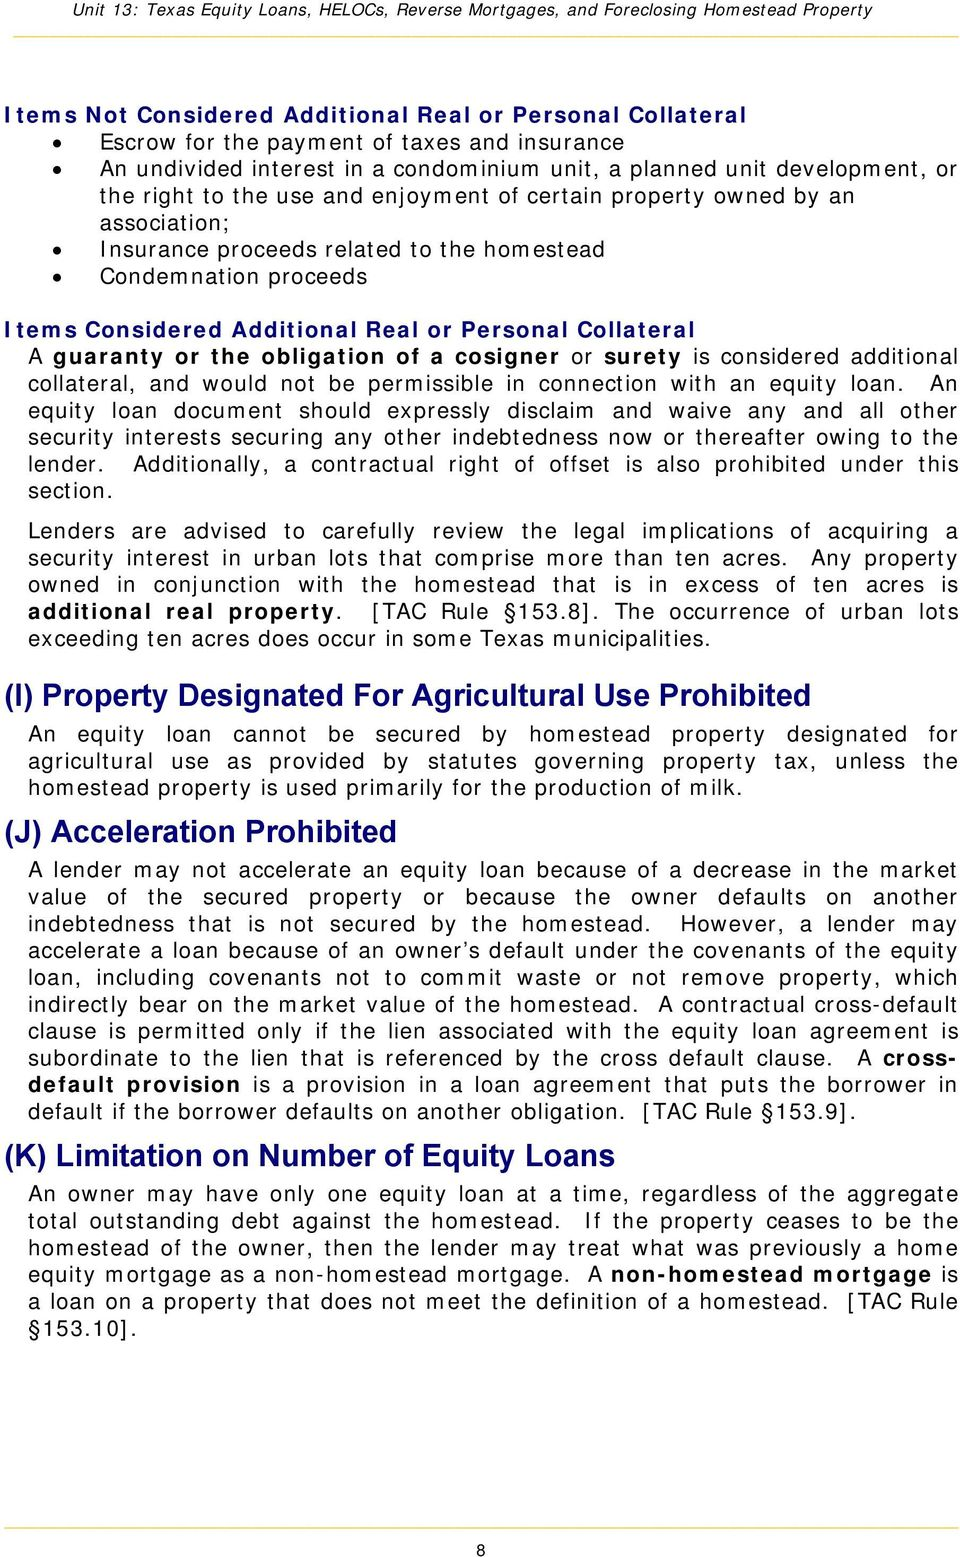 the obligation of a cosigner or surety is considered additional collateral, and would not be permissible in connection with an equity loan.